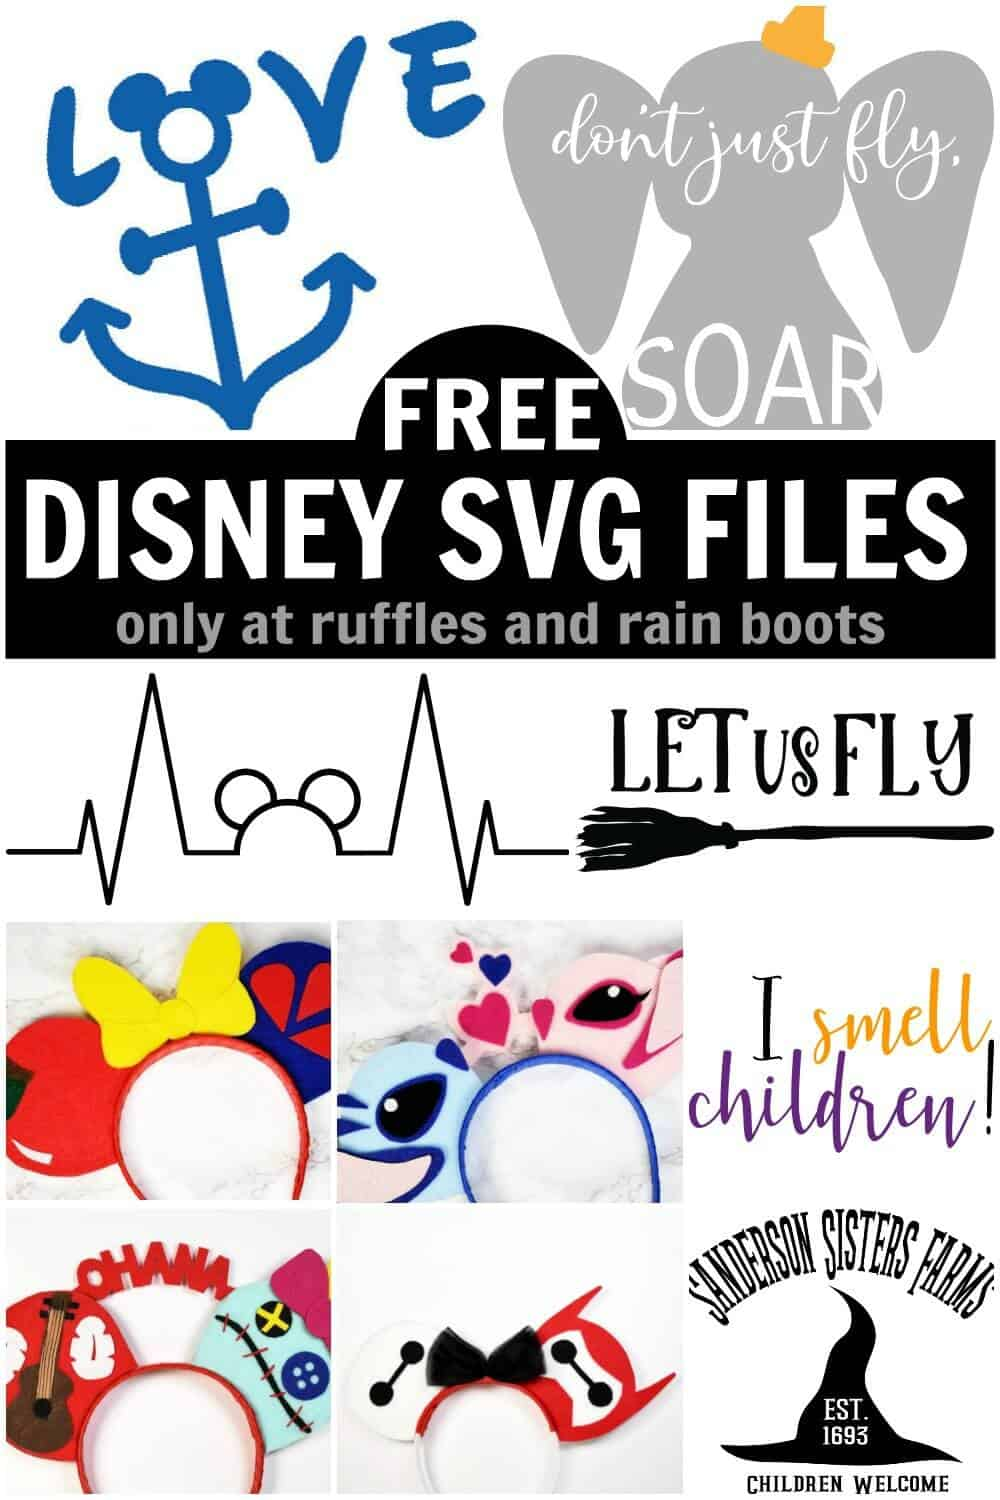 Free Disney Svg Files On Ruffles And Rain Boots